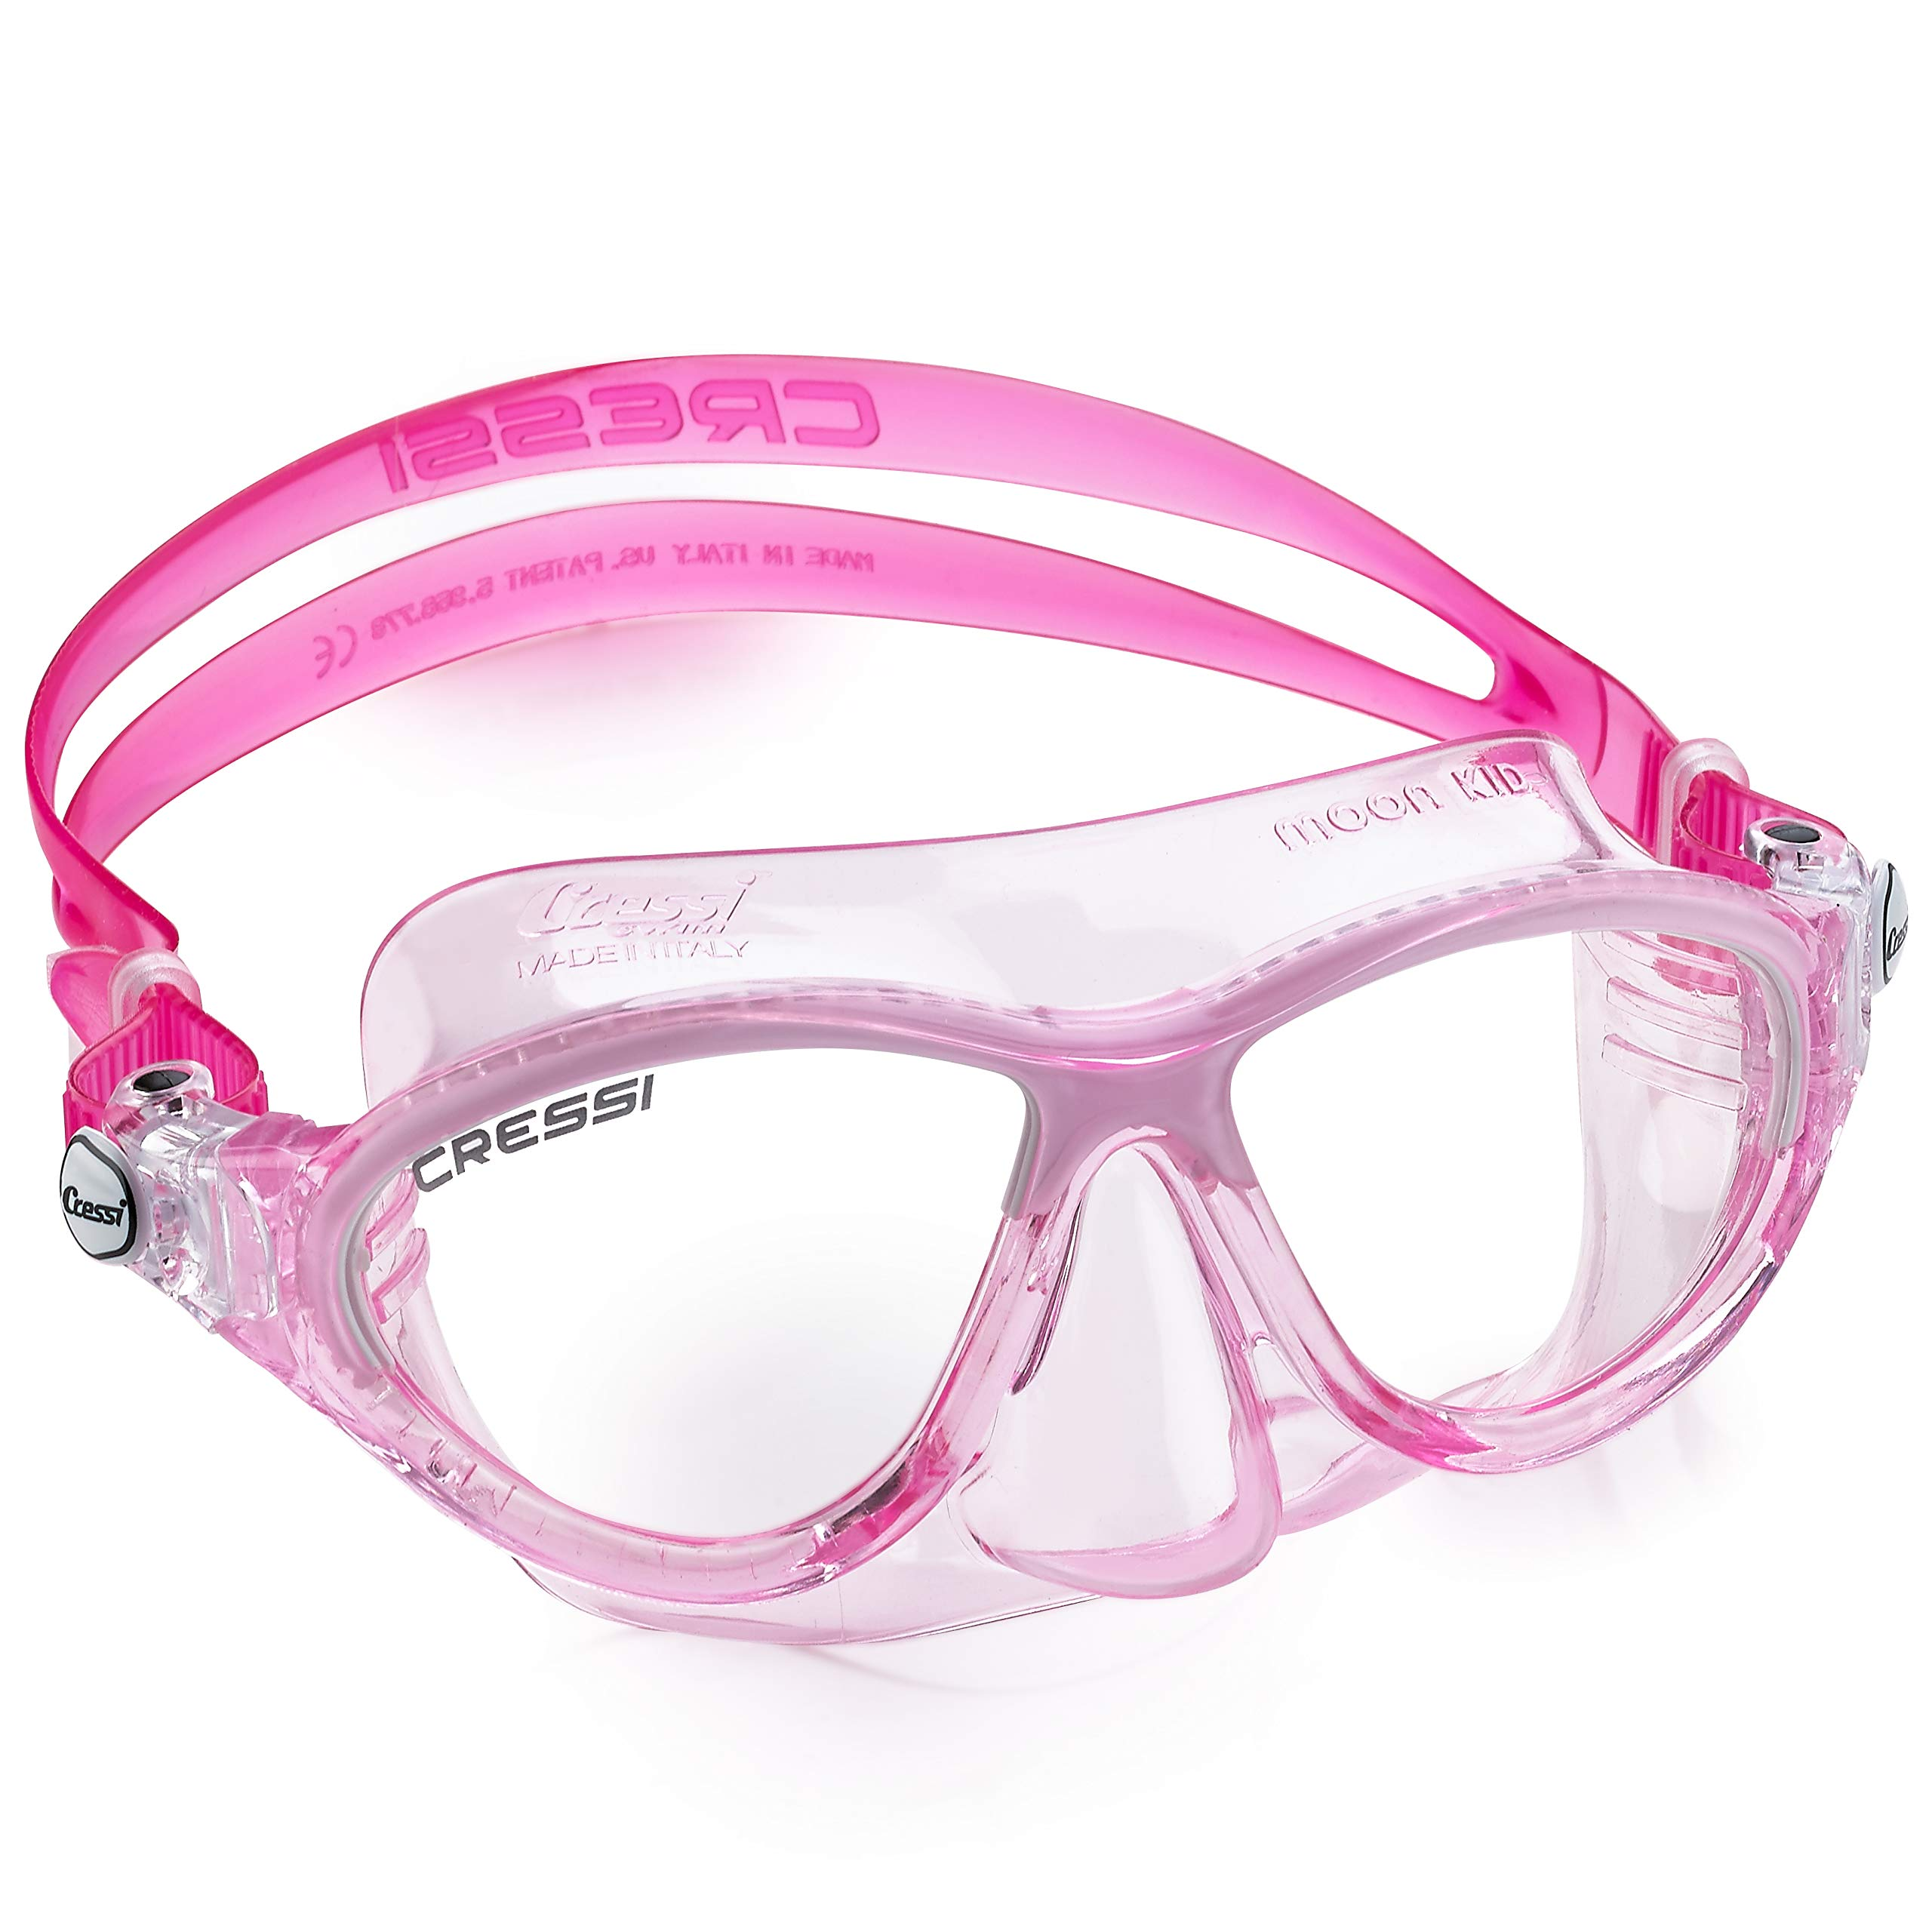 Cressi Moon Kids Swim Goggles, No Leaking Anti Fog UV Protection Dive Mask - Kids Ages 3-4-5-6-7 for Swimming and Diving - Made in Italy (Pink White)